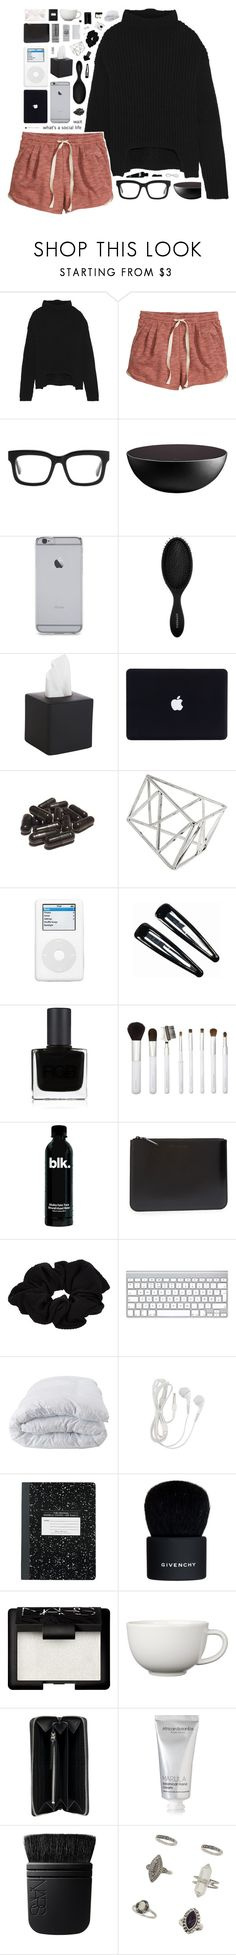 """1014"" by glitterals ❤ liked on Polyvore featuring Rick Owens, H&M, STELLA McCARTNEY, Sephora Collection, CB2, Topshop, Clips, RGB Cosmetics, Sonia Kashuk and Comme des Garçons"